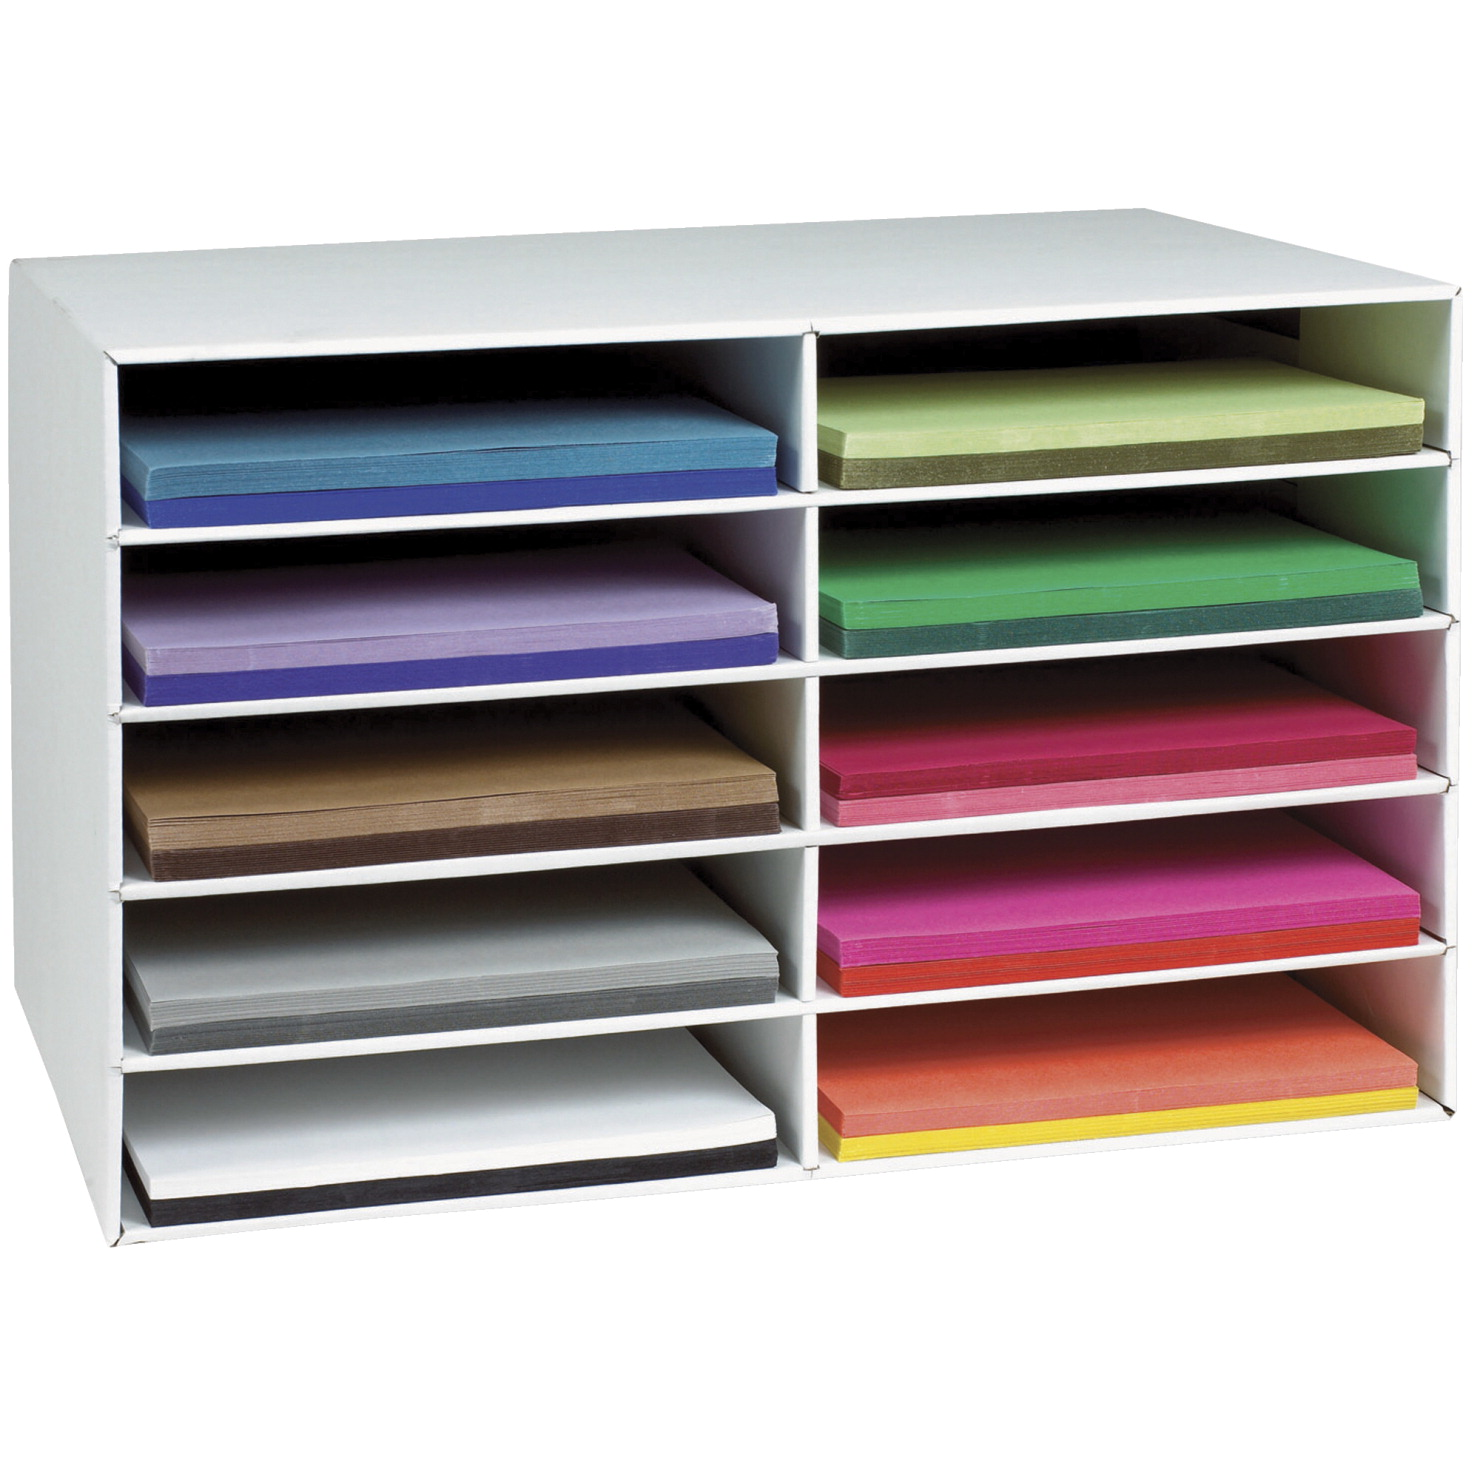 Pacon Construction Paper Storage Unit, 10 Slots, 16-7/8 H x 26-7/8 W x 18-1/2 D inches